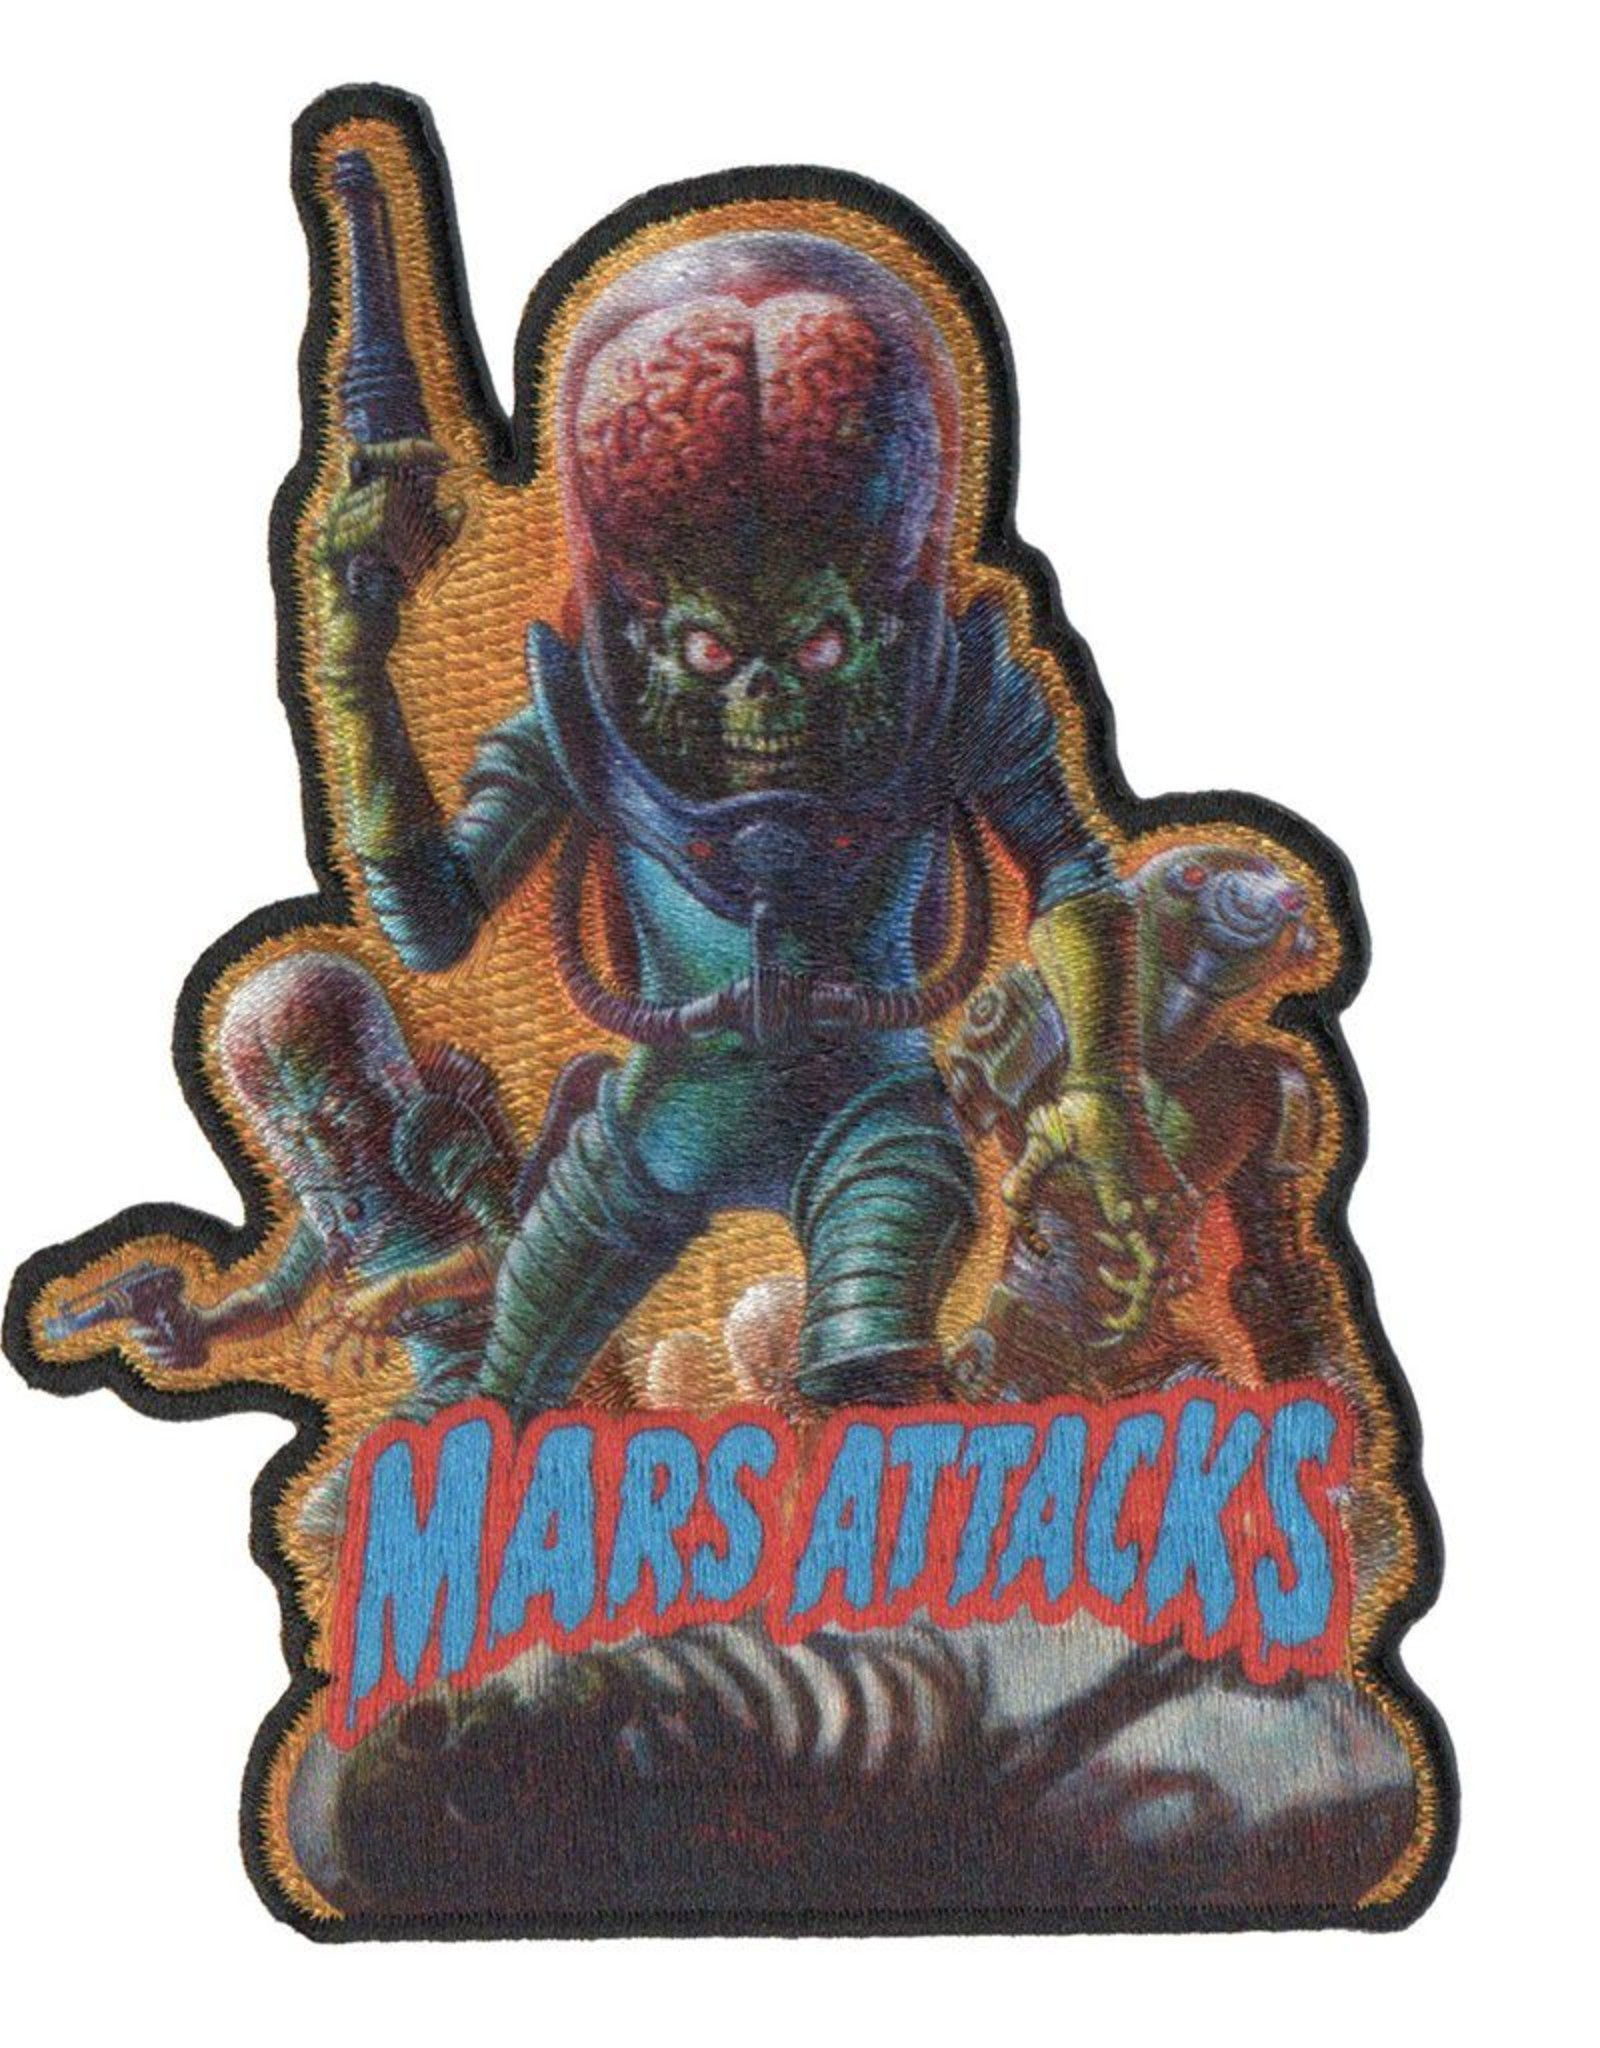 Mars Attacks Occupation Patch